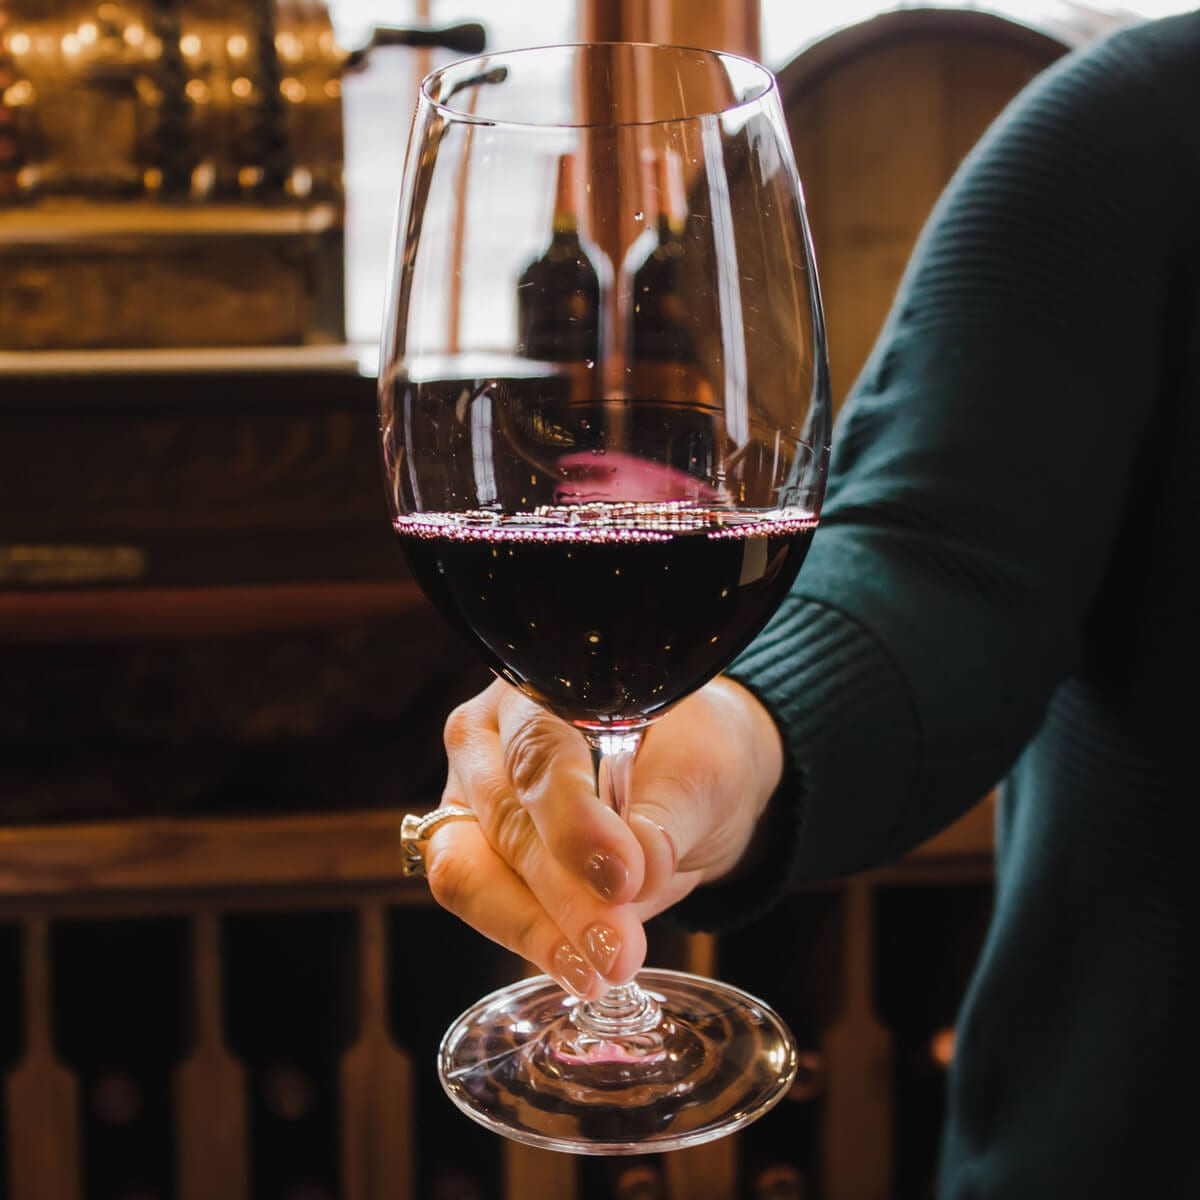 How to Hold a Wine Glass: A Guide to Proper Wine Etiquette